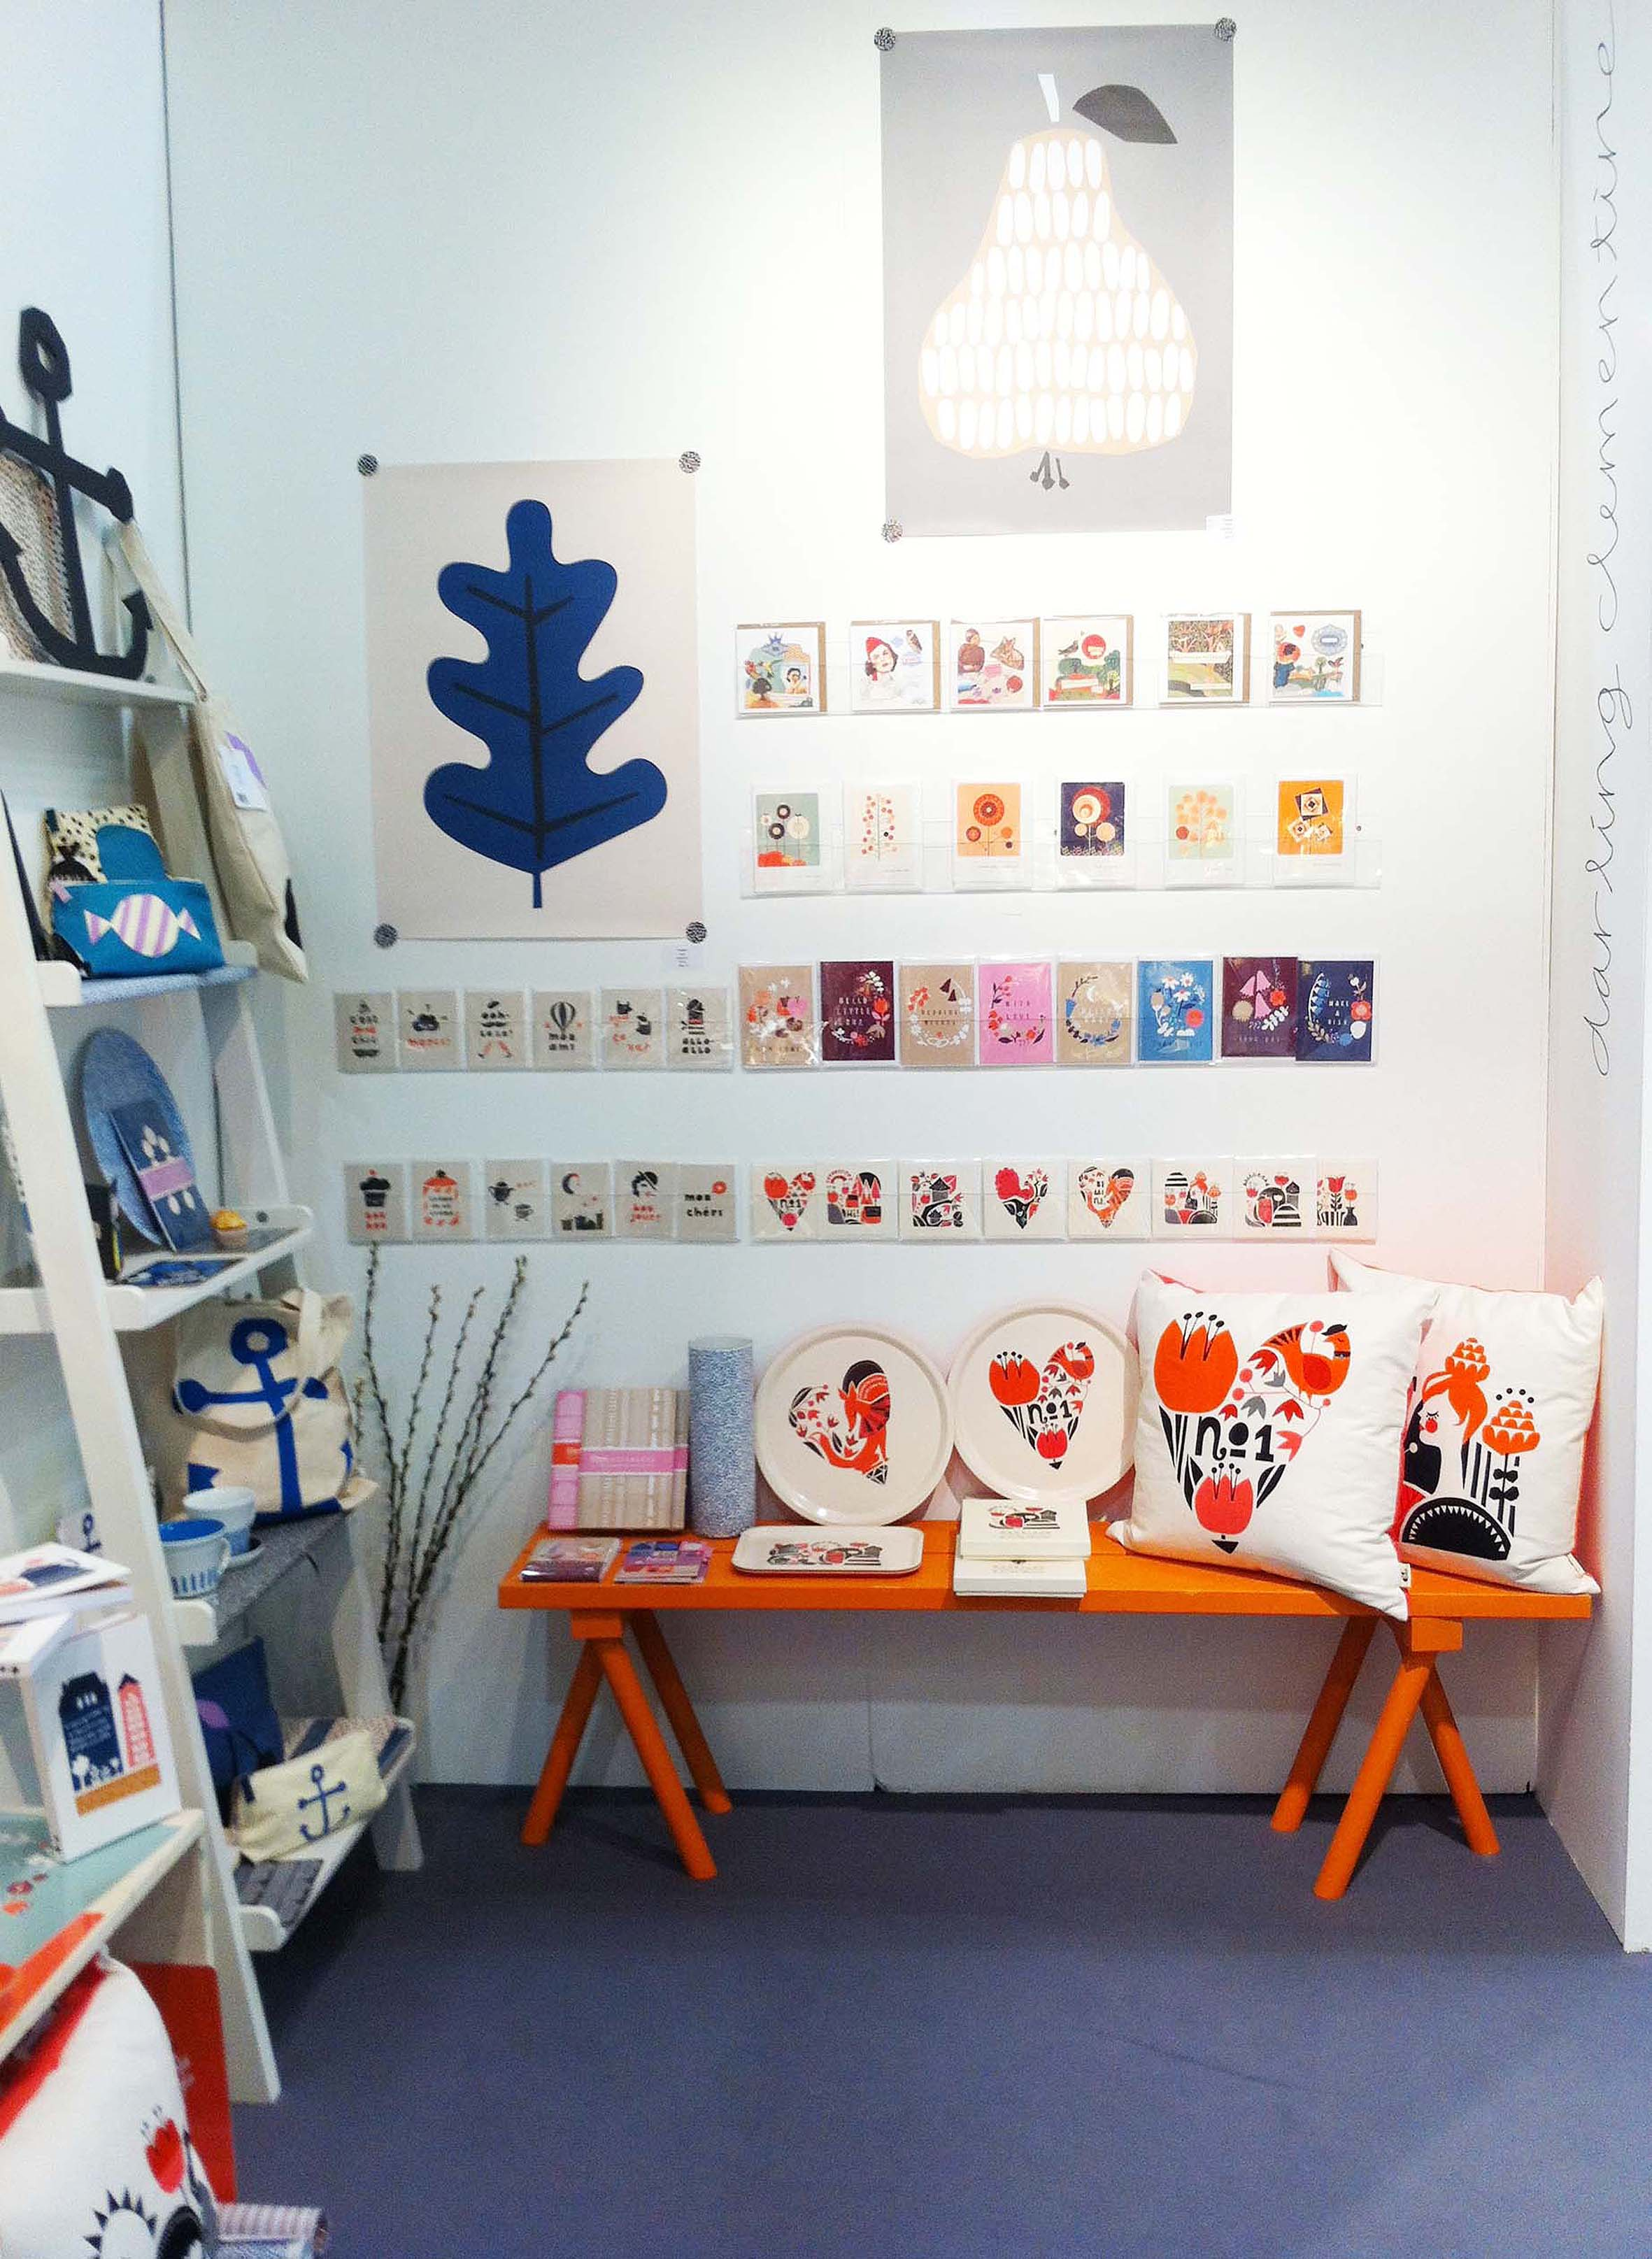 Trade Stands Olympia : Trade show review spotted at top drawer folksy